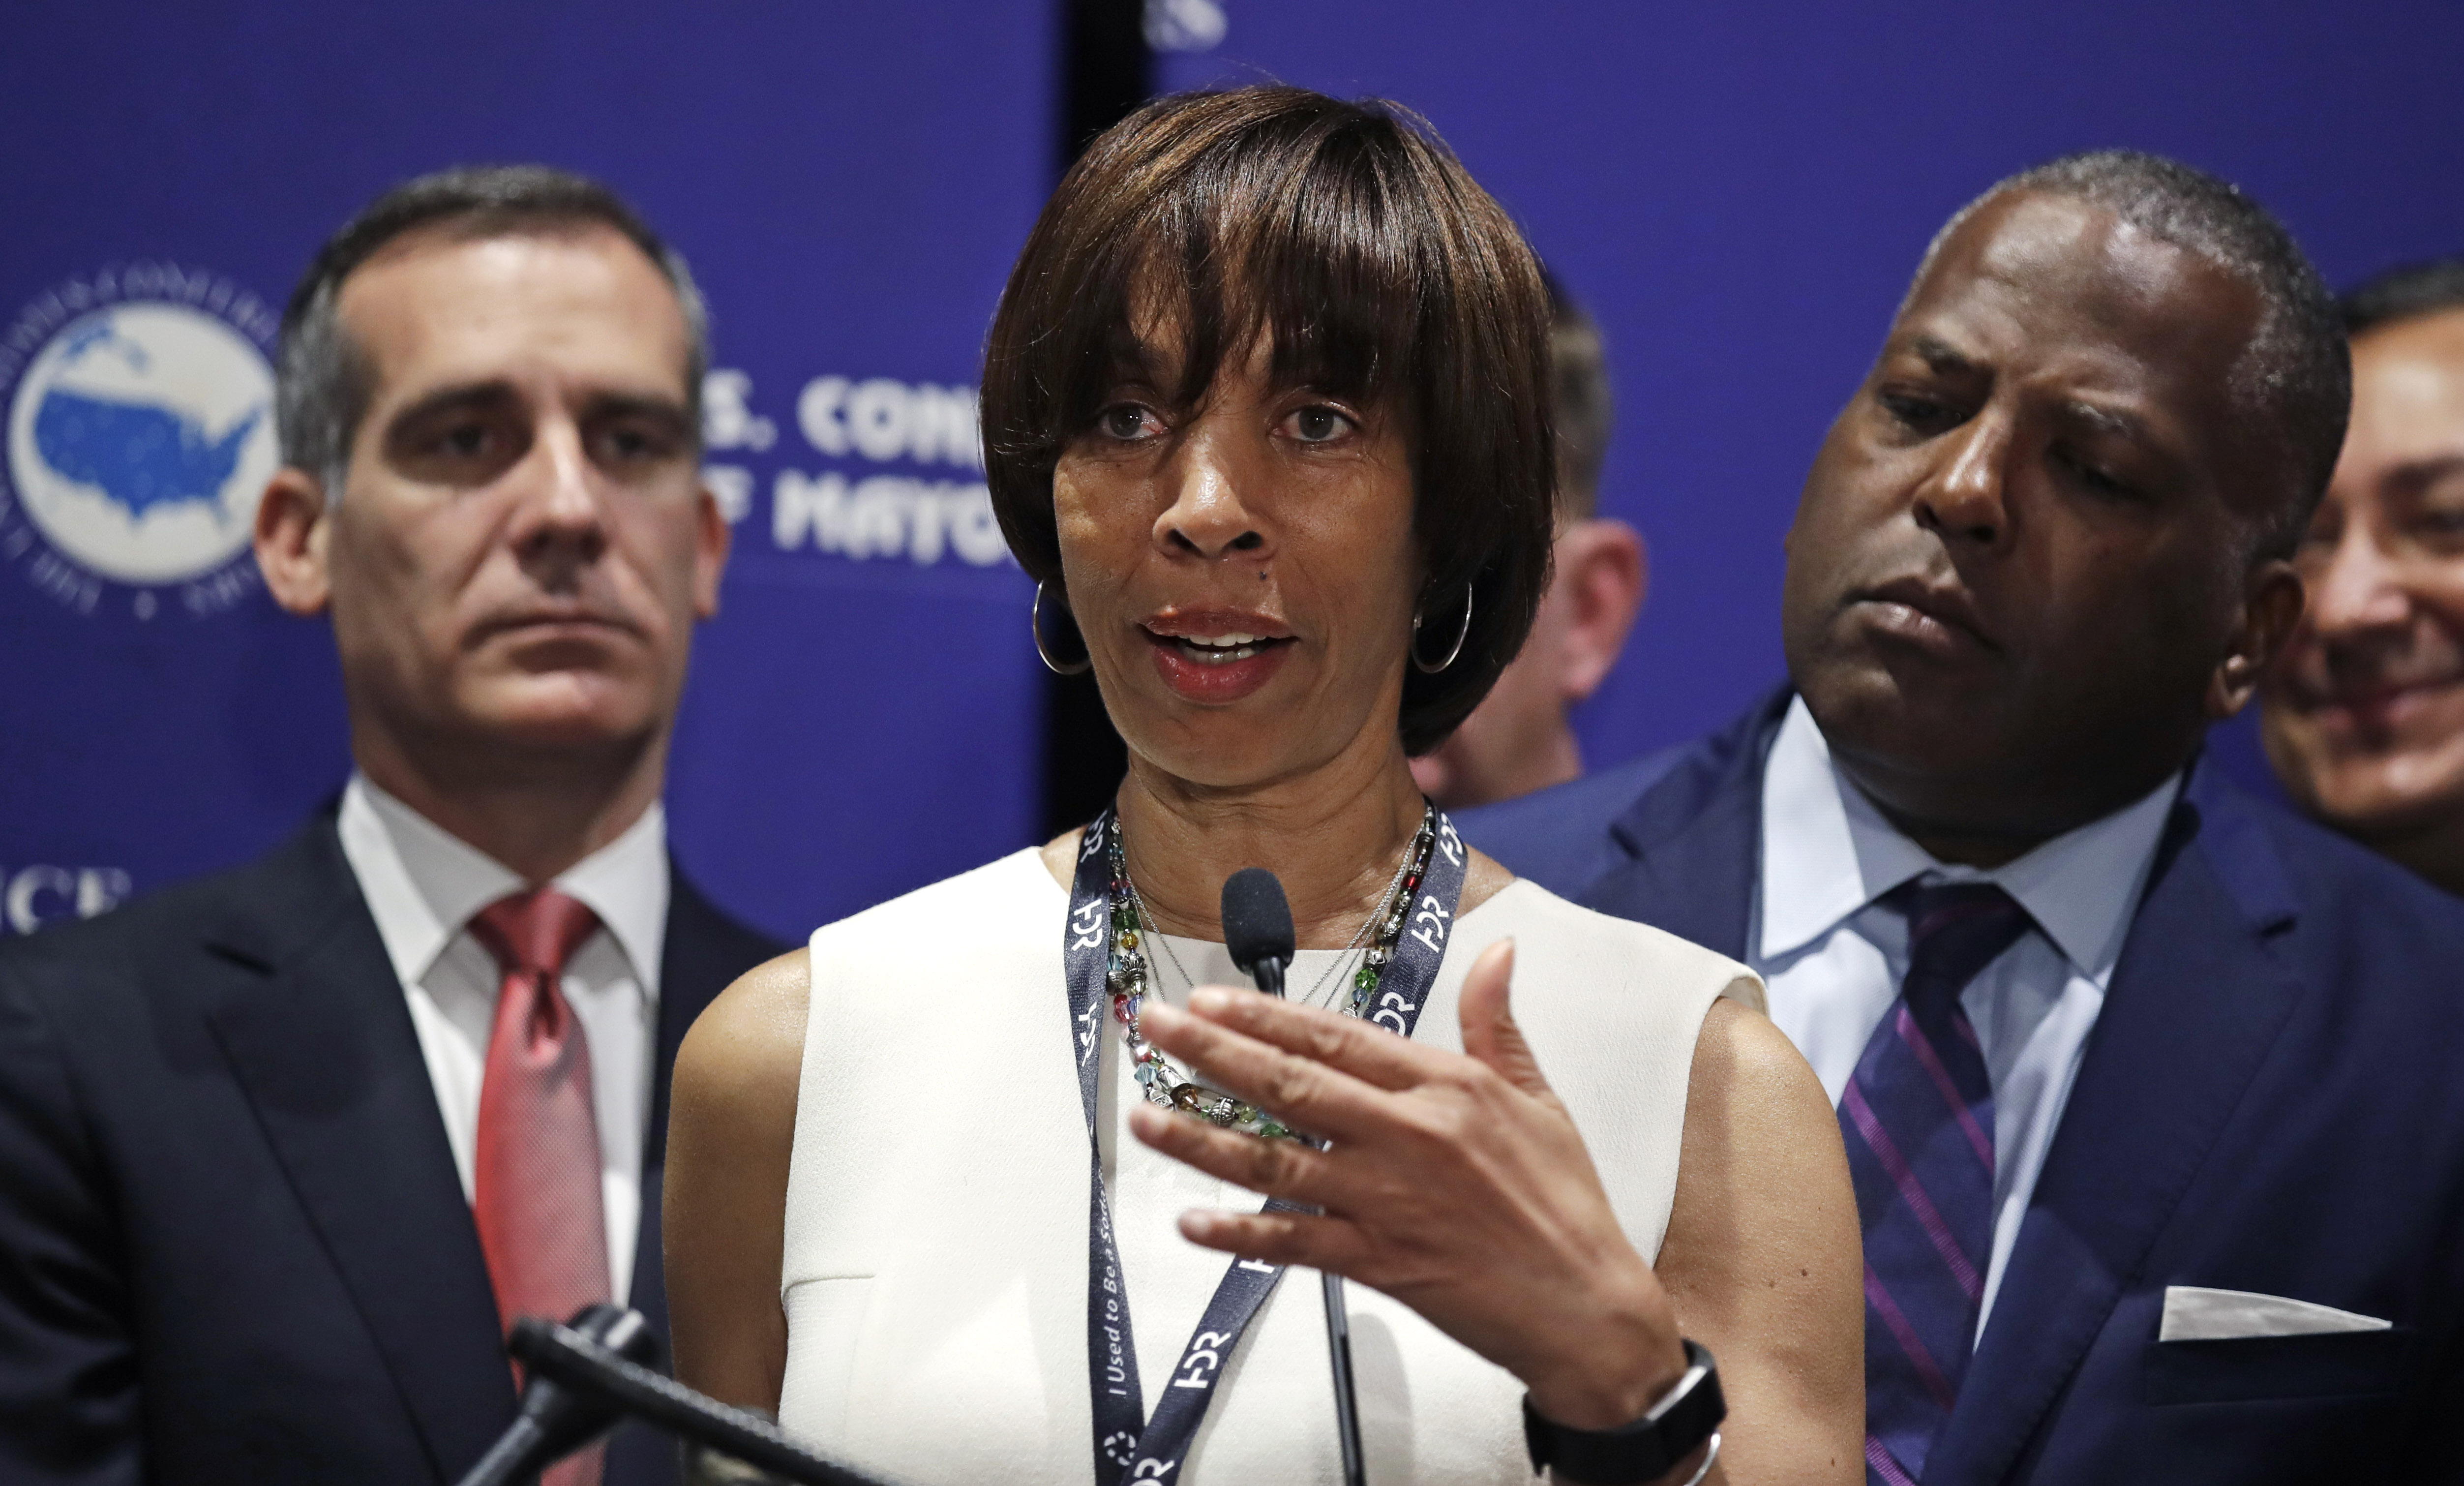 Ex-Baltimore mayor seeks prison sentence of 1 year and 1 day